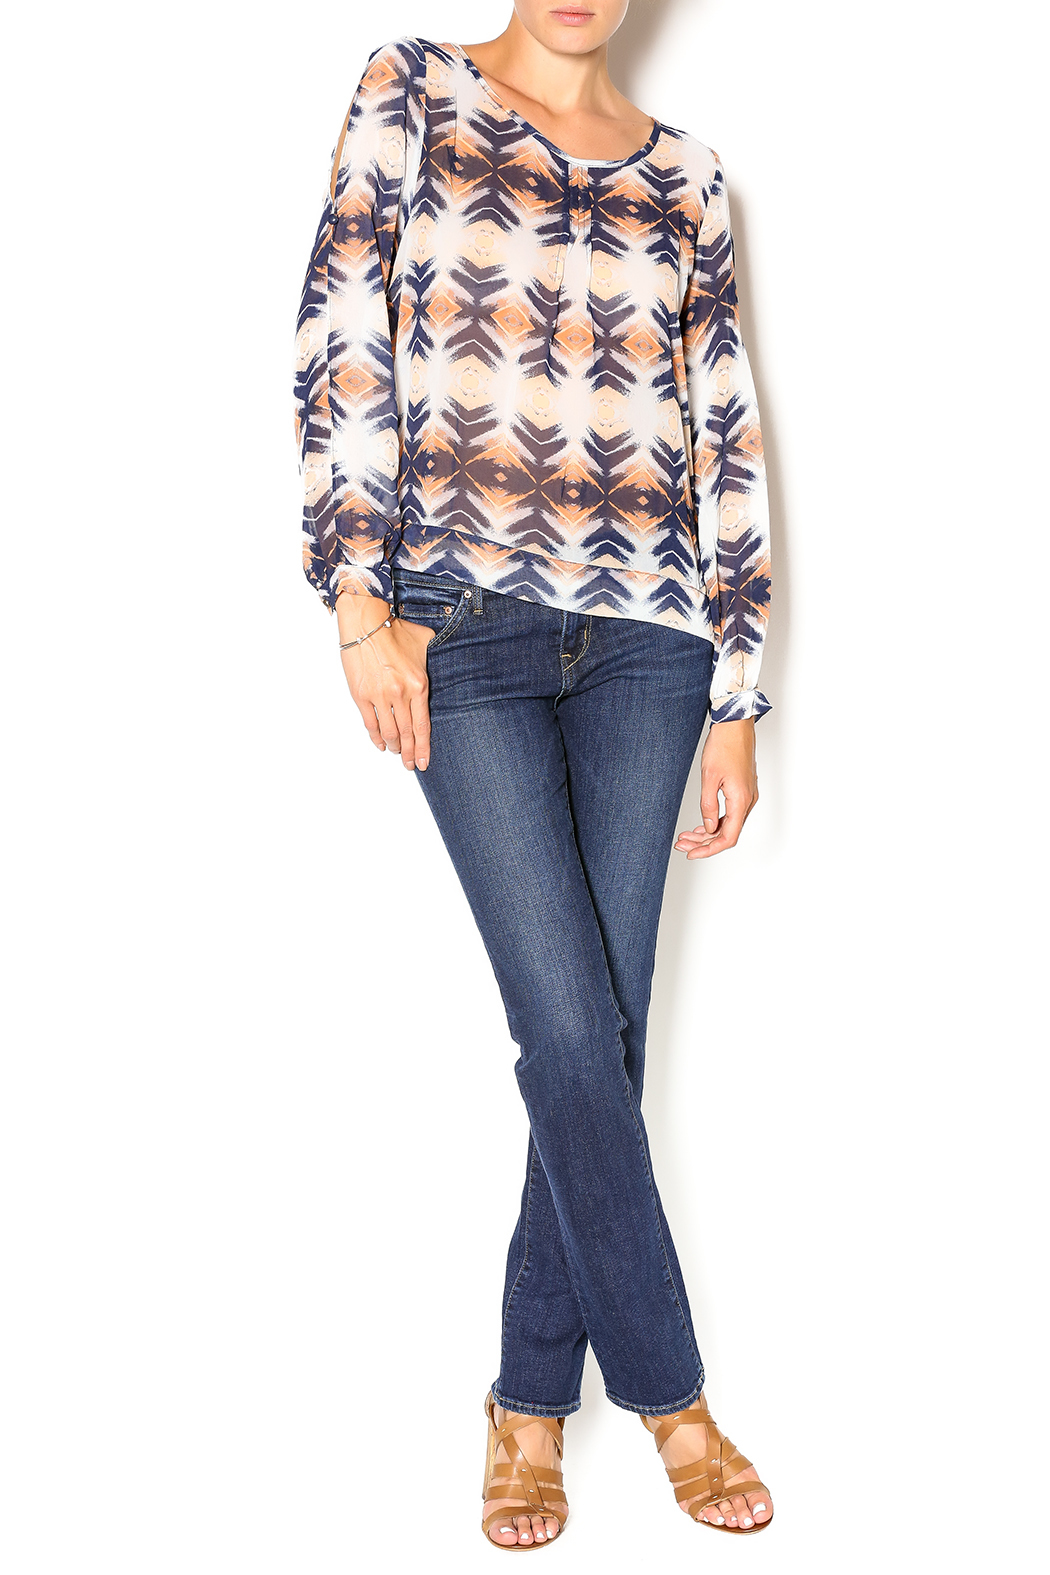 Umgee USA Sierra Nevada Blouse - Front Full Image